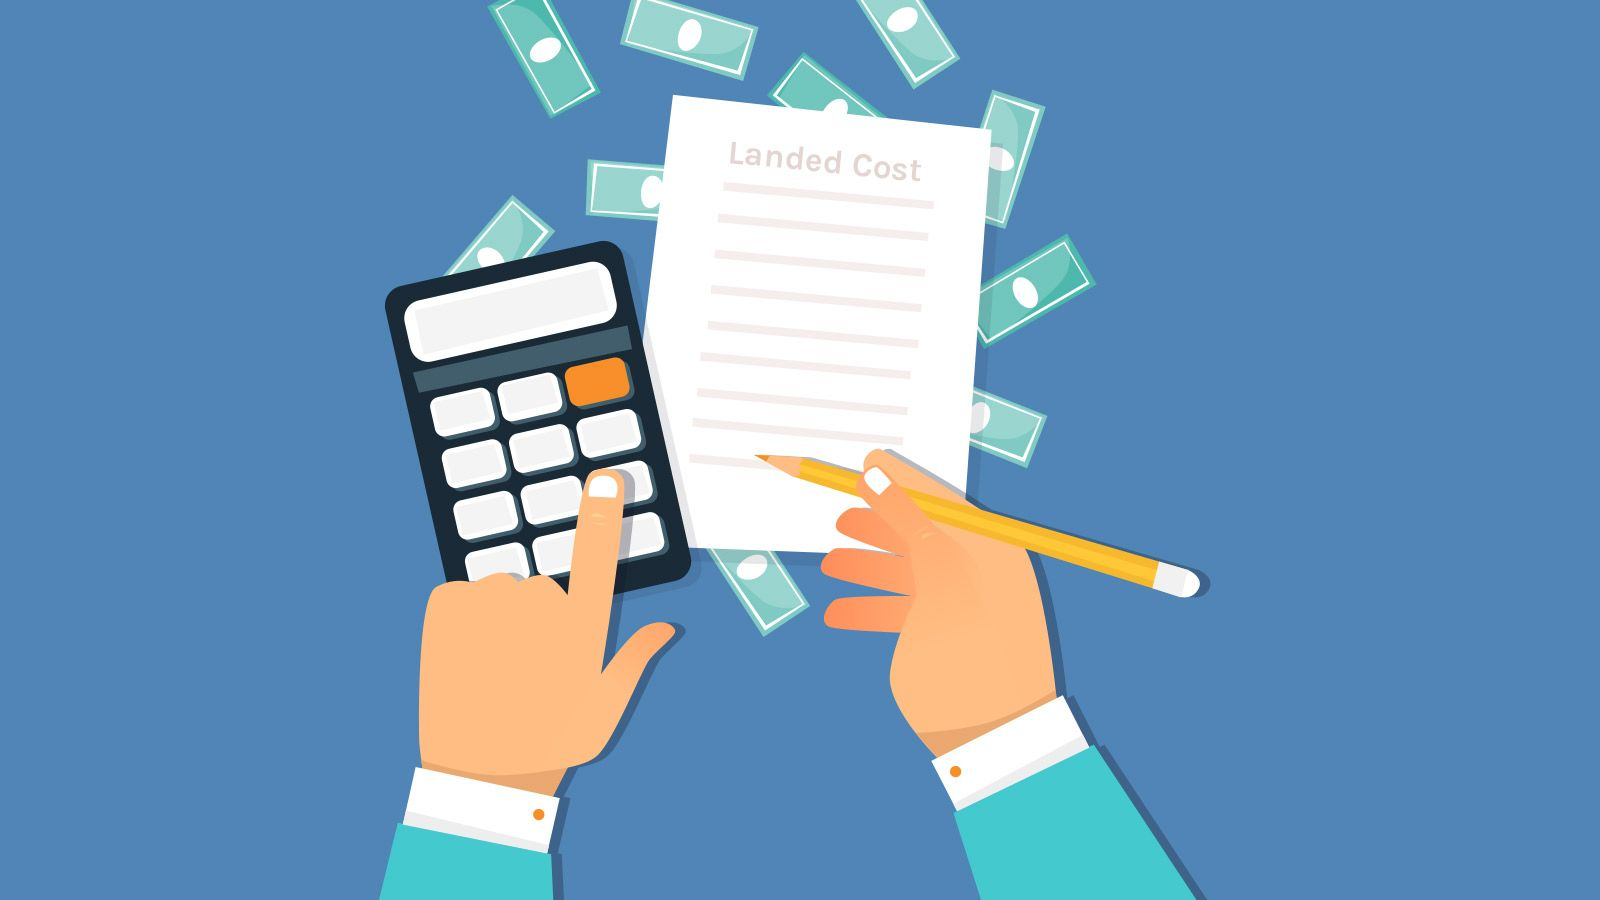 Landed Cost: What Is It & How to Calculate It?